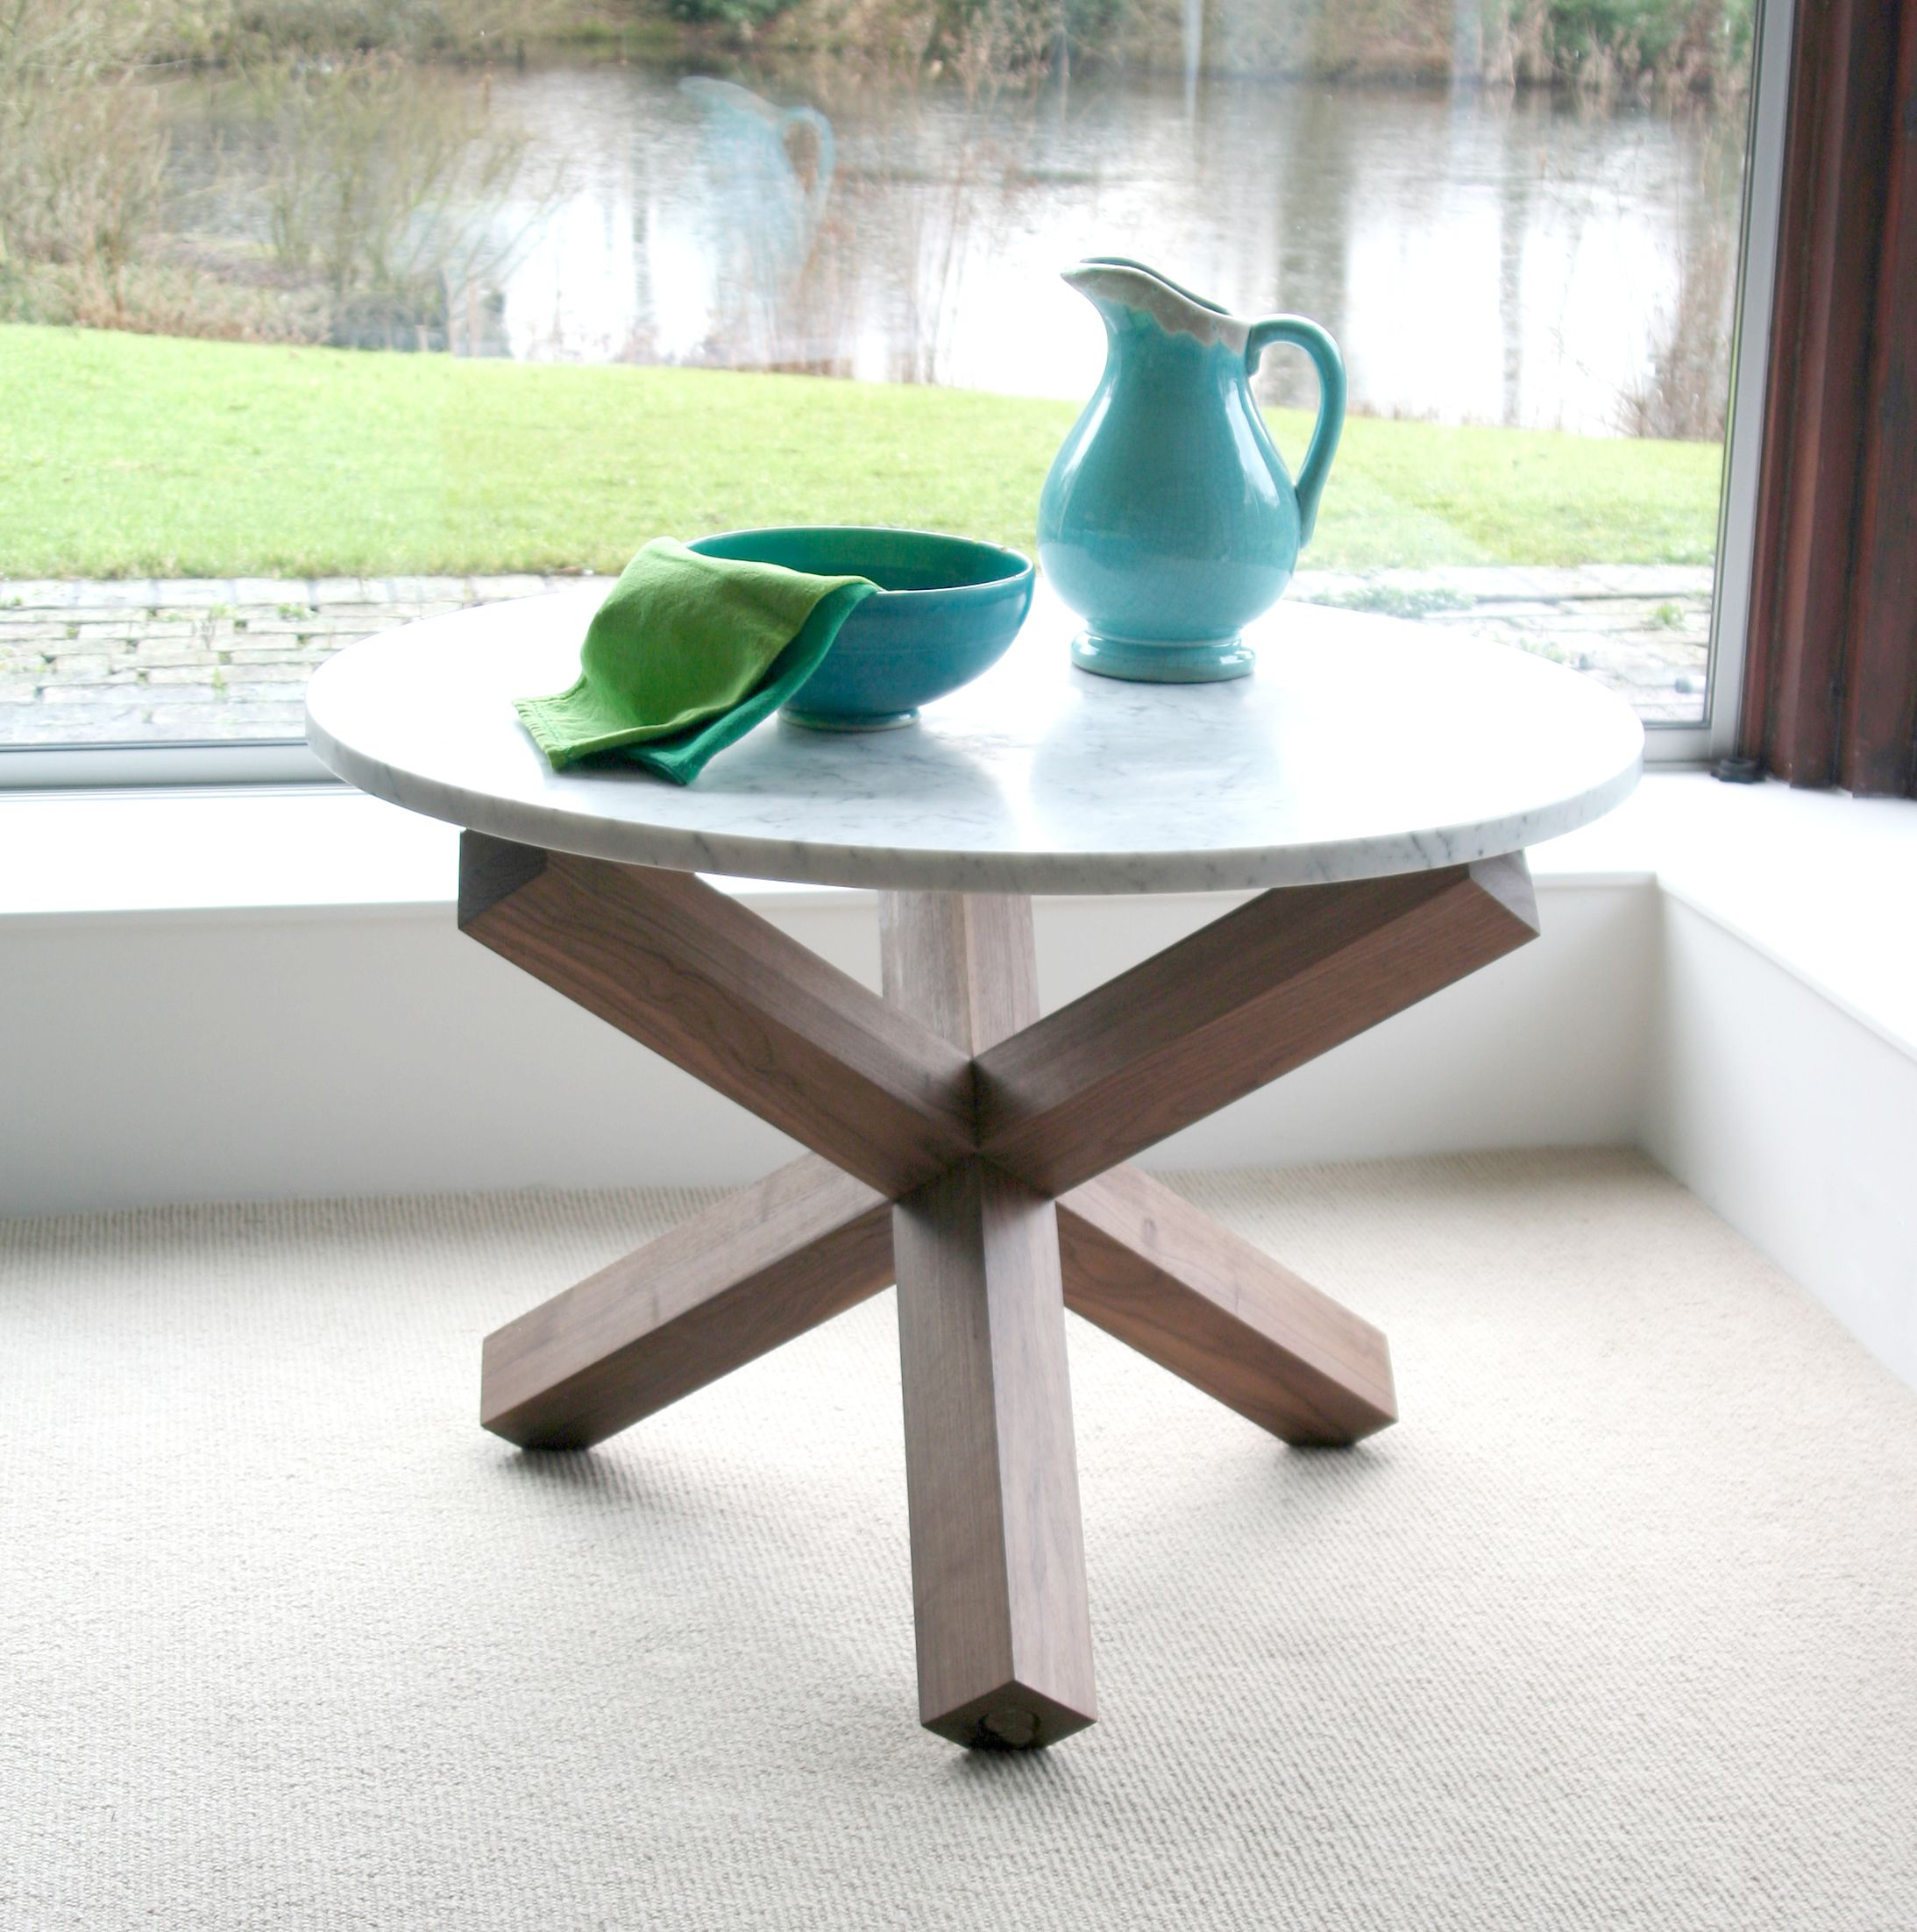 Criss Cross Table 30mm Carrara Marble Sits On Solid Walnut Legs With